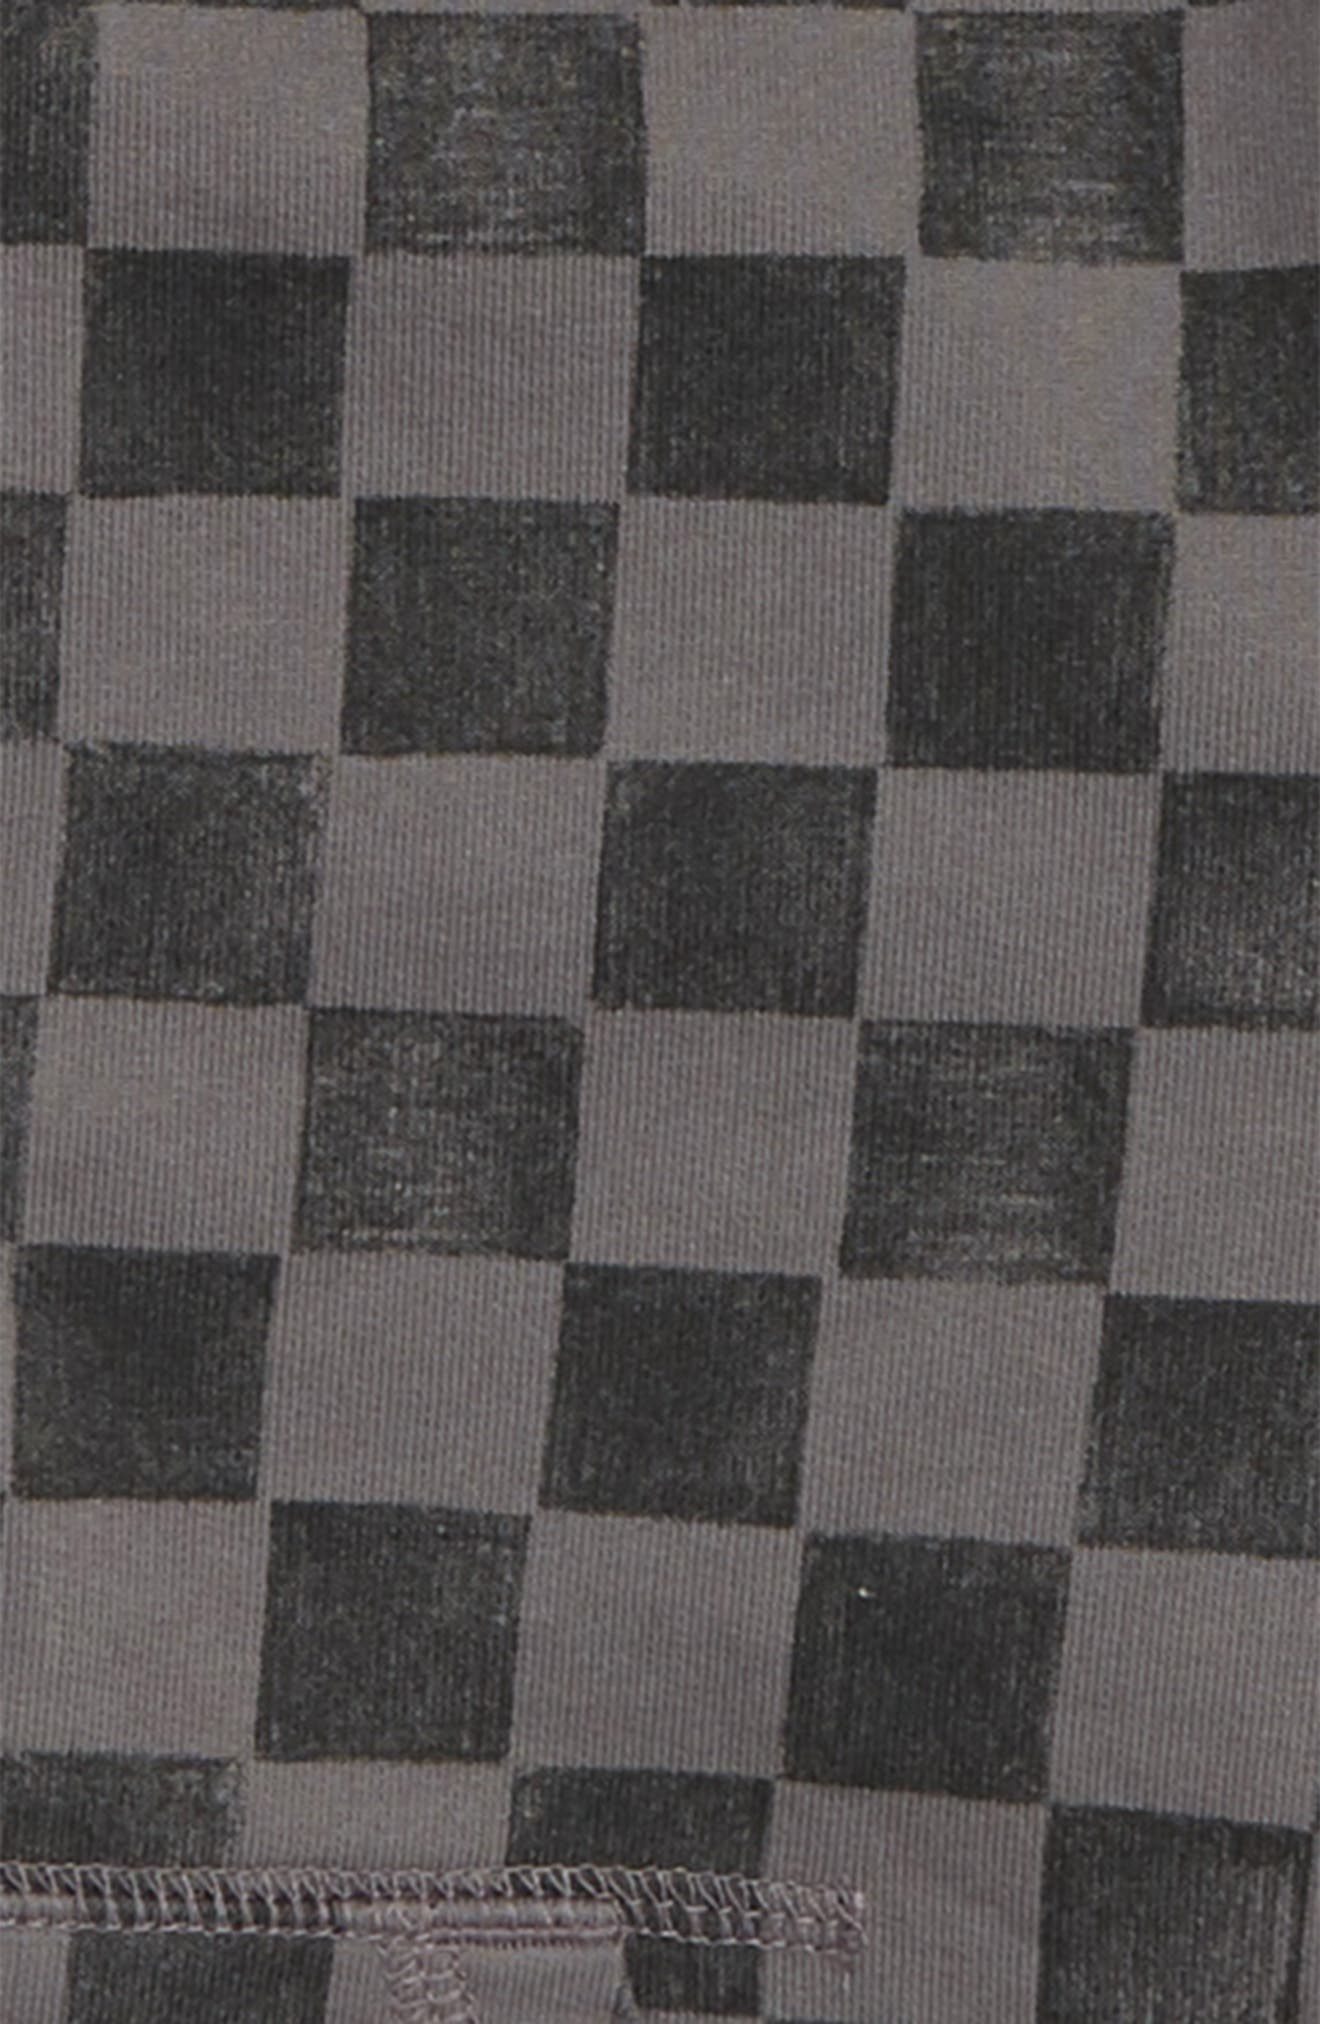 Checkerboard Zip Hoodie,                             Alternate thumbnail 2, color,                             SOHO SQUARES